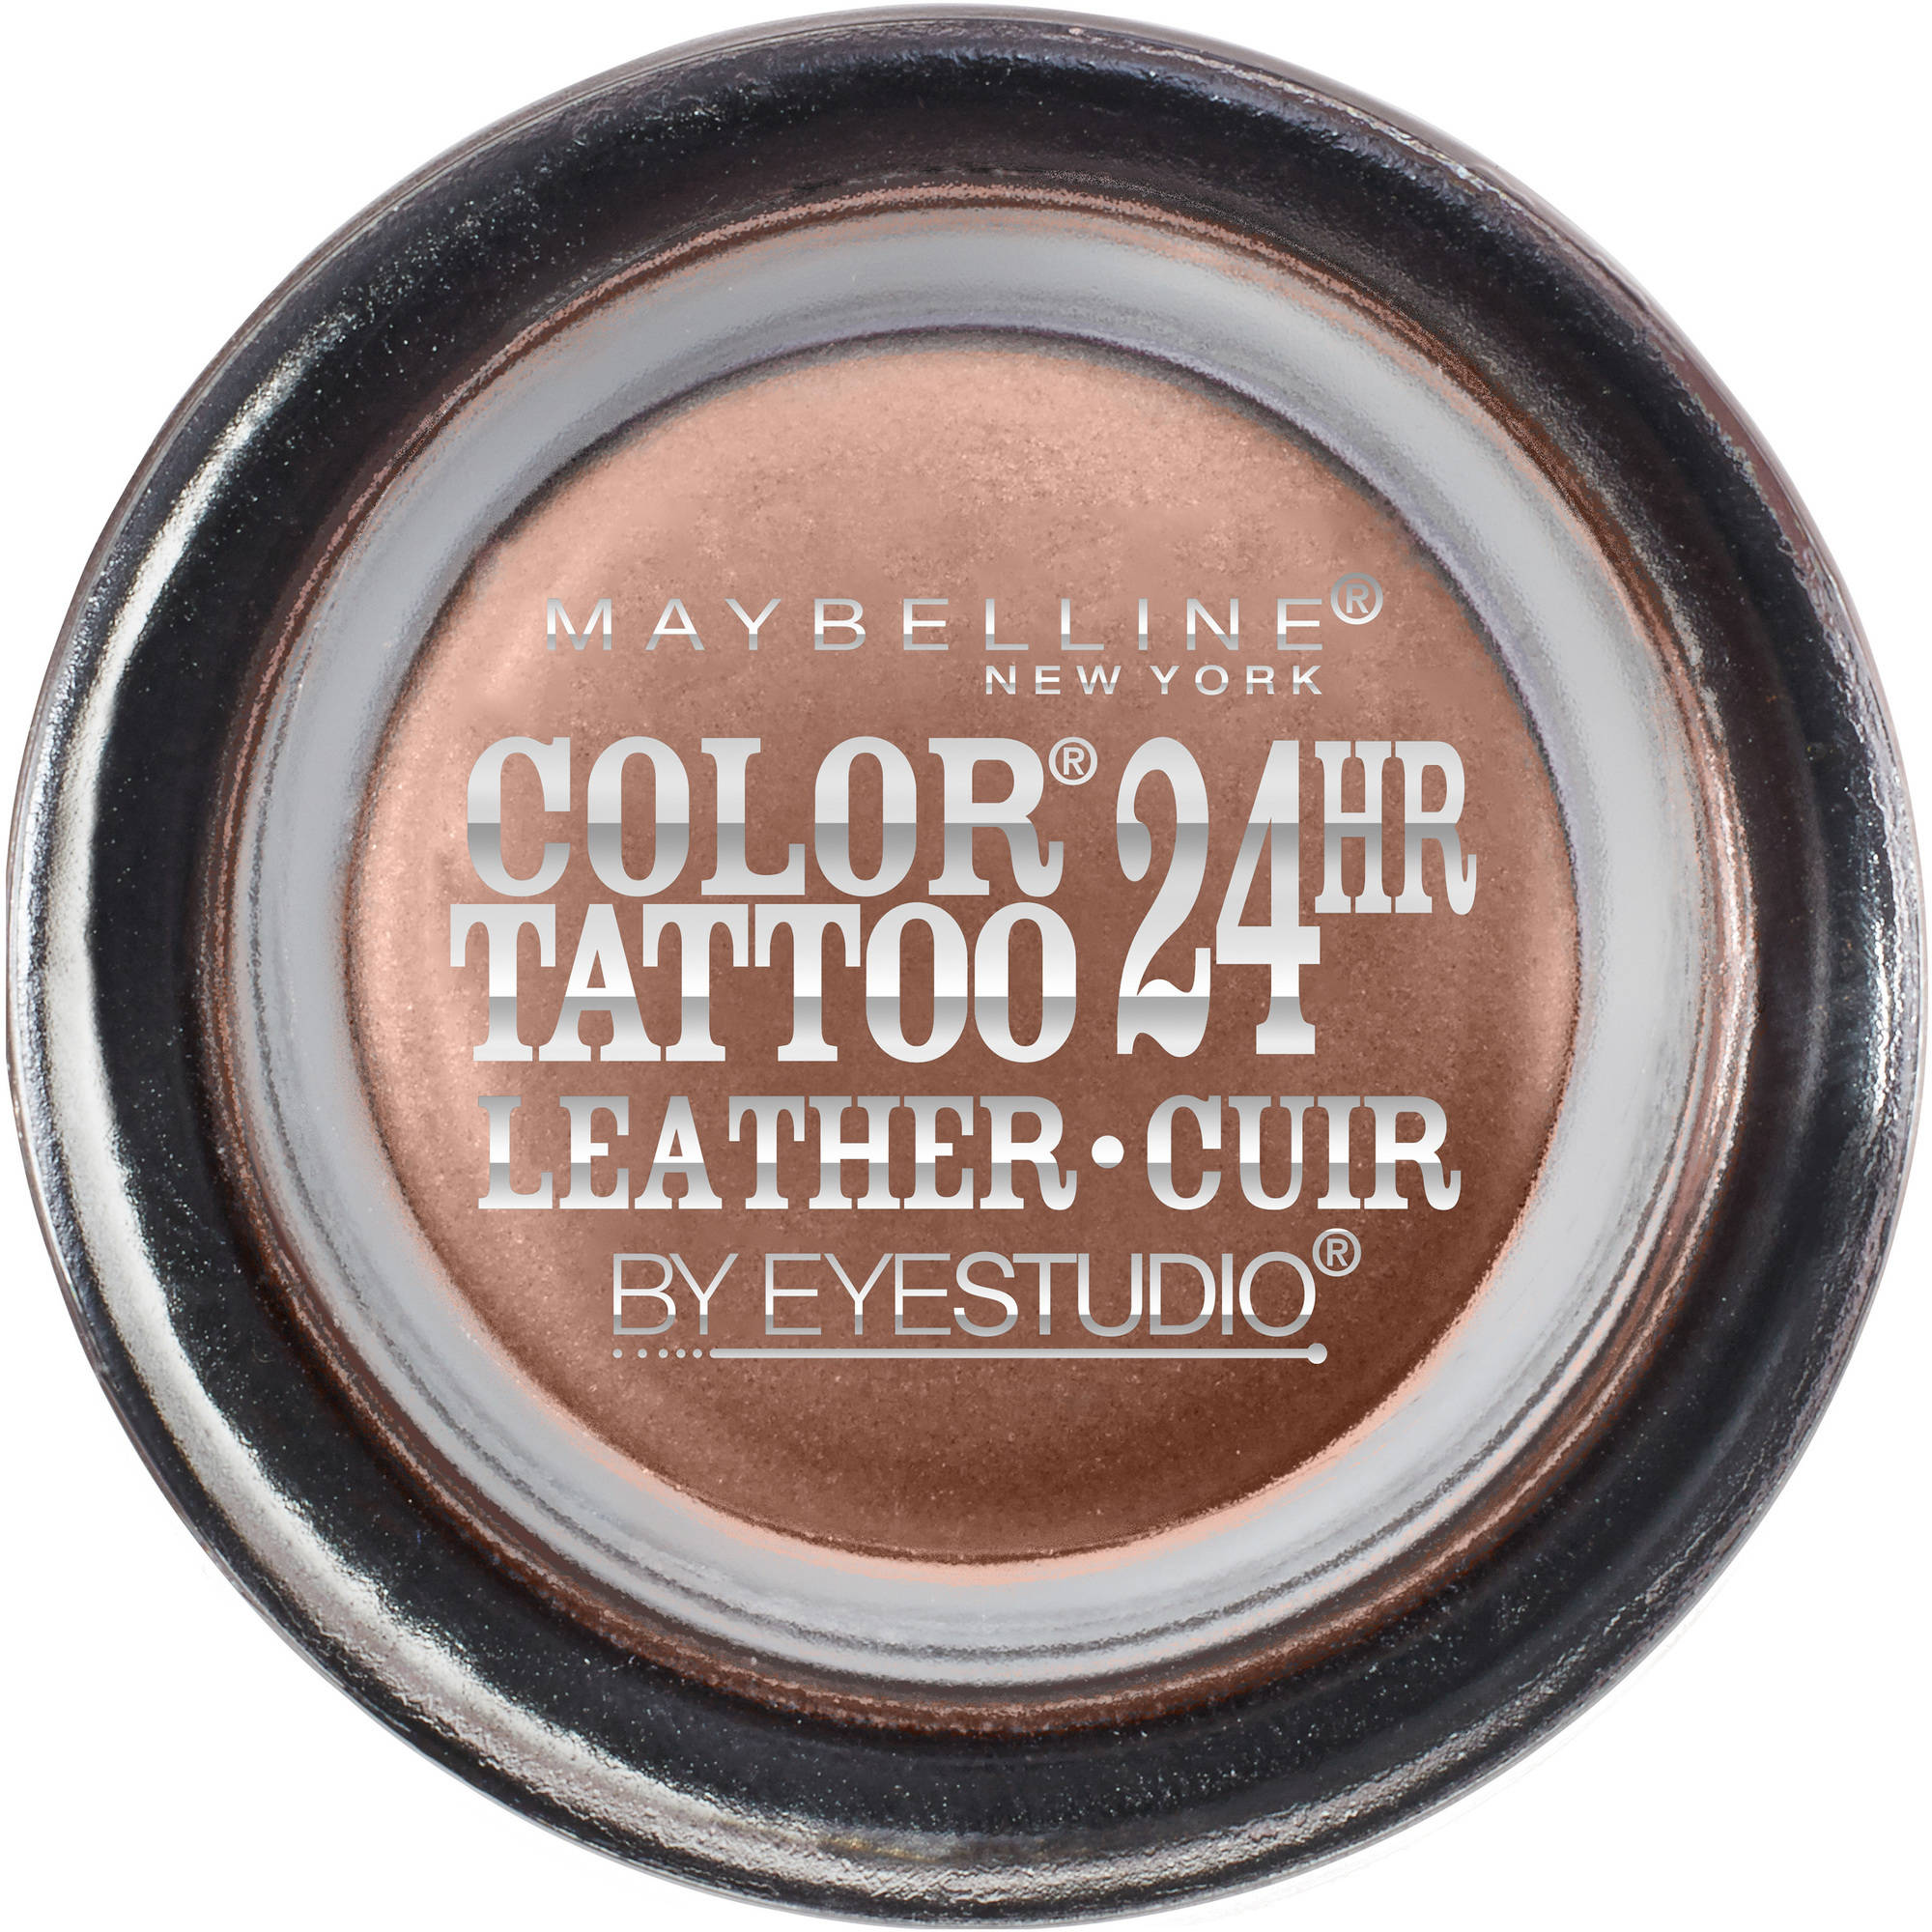 Maybelline EyeStudio Color Tattoo Leather 24HR Eyeshadow